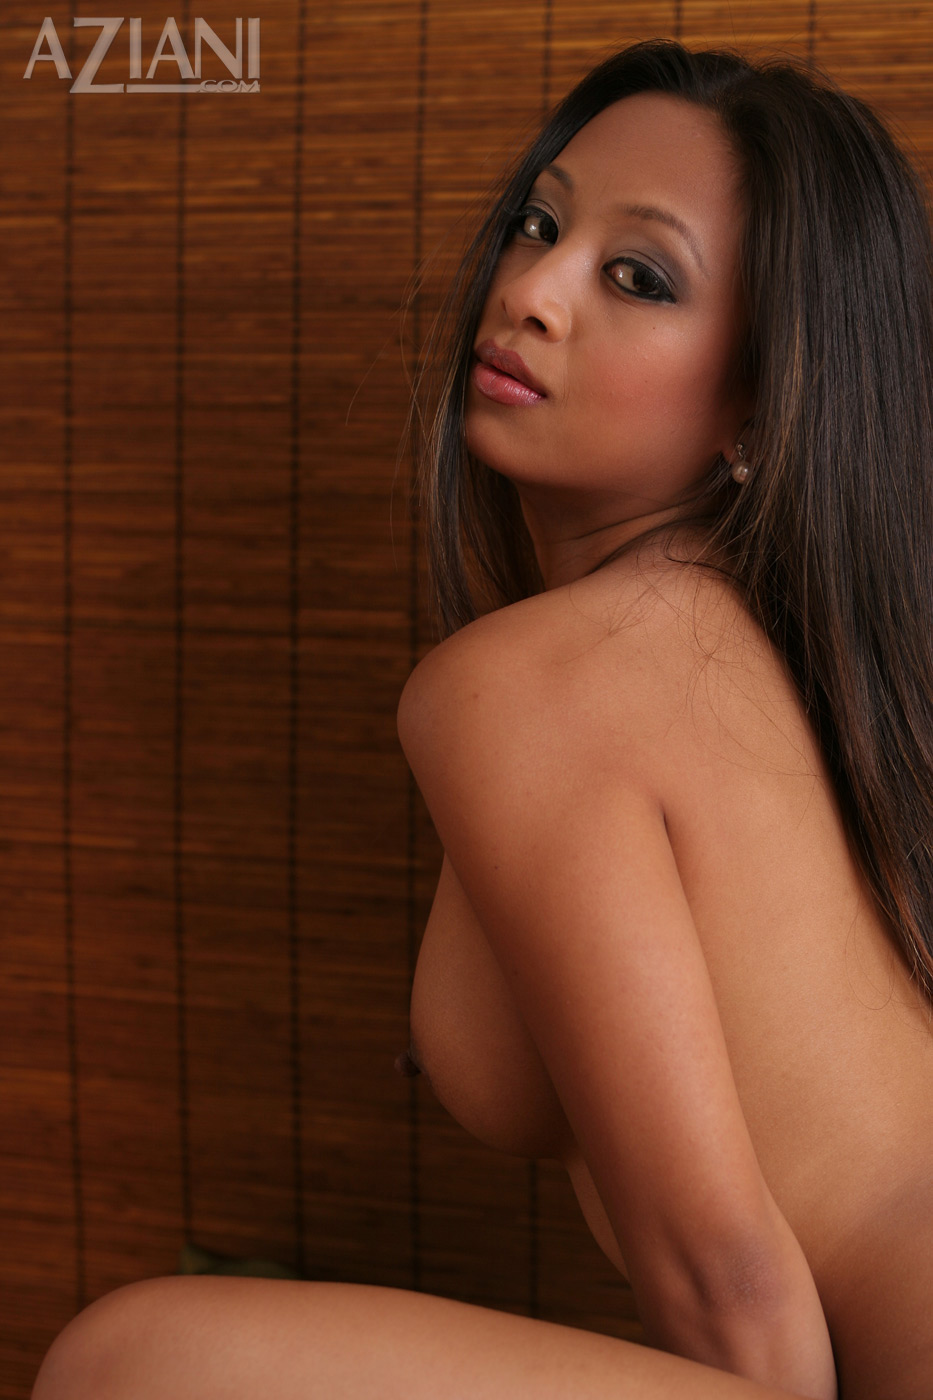 kina kai naked body